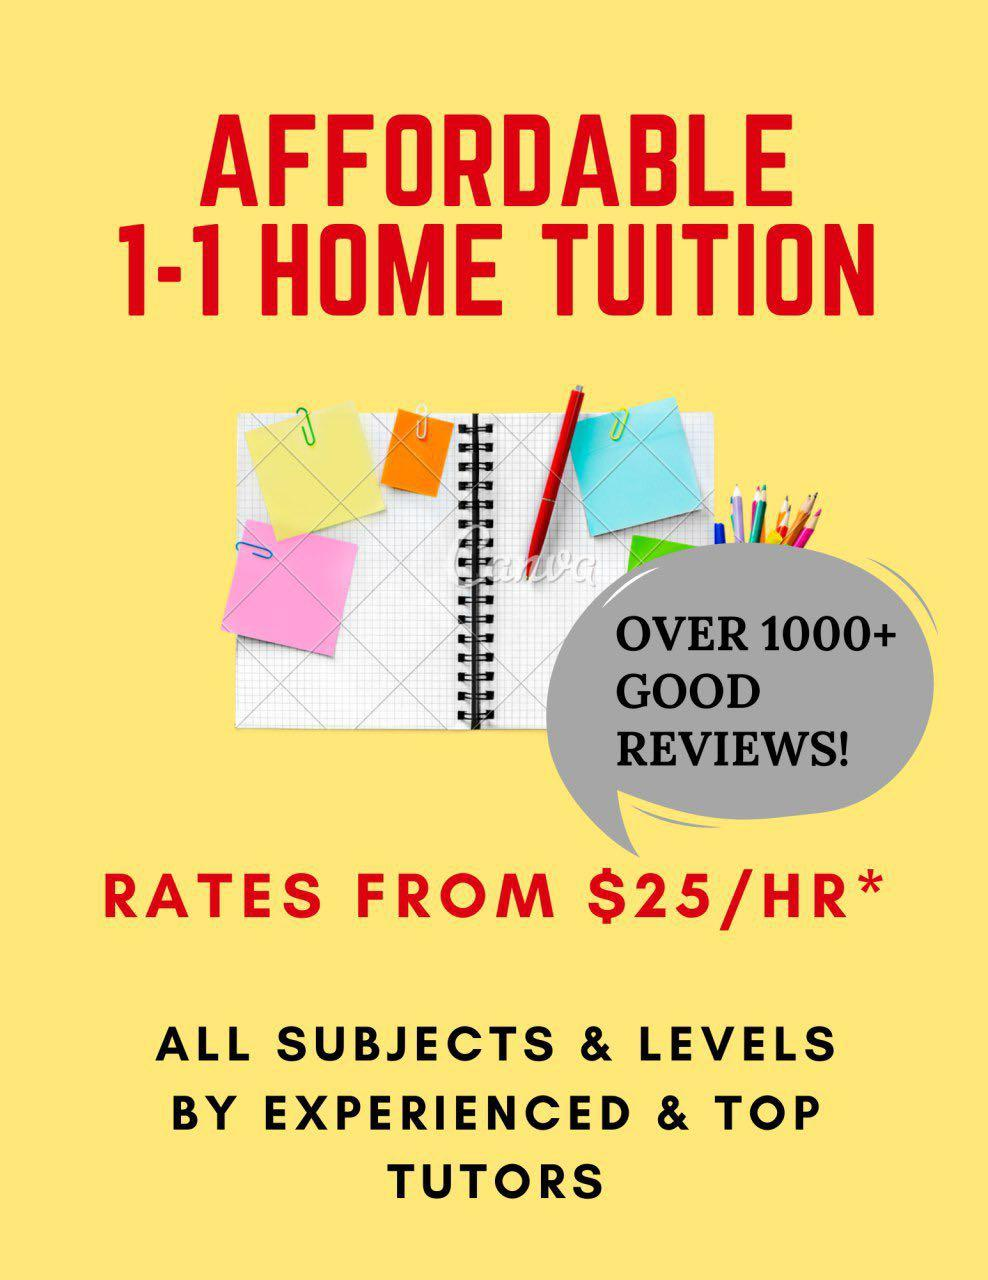 AFFORDABLE 1-1 Home Tuition by Experienced Tutors